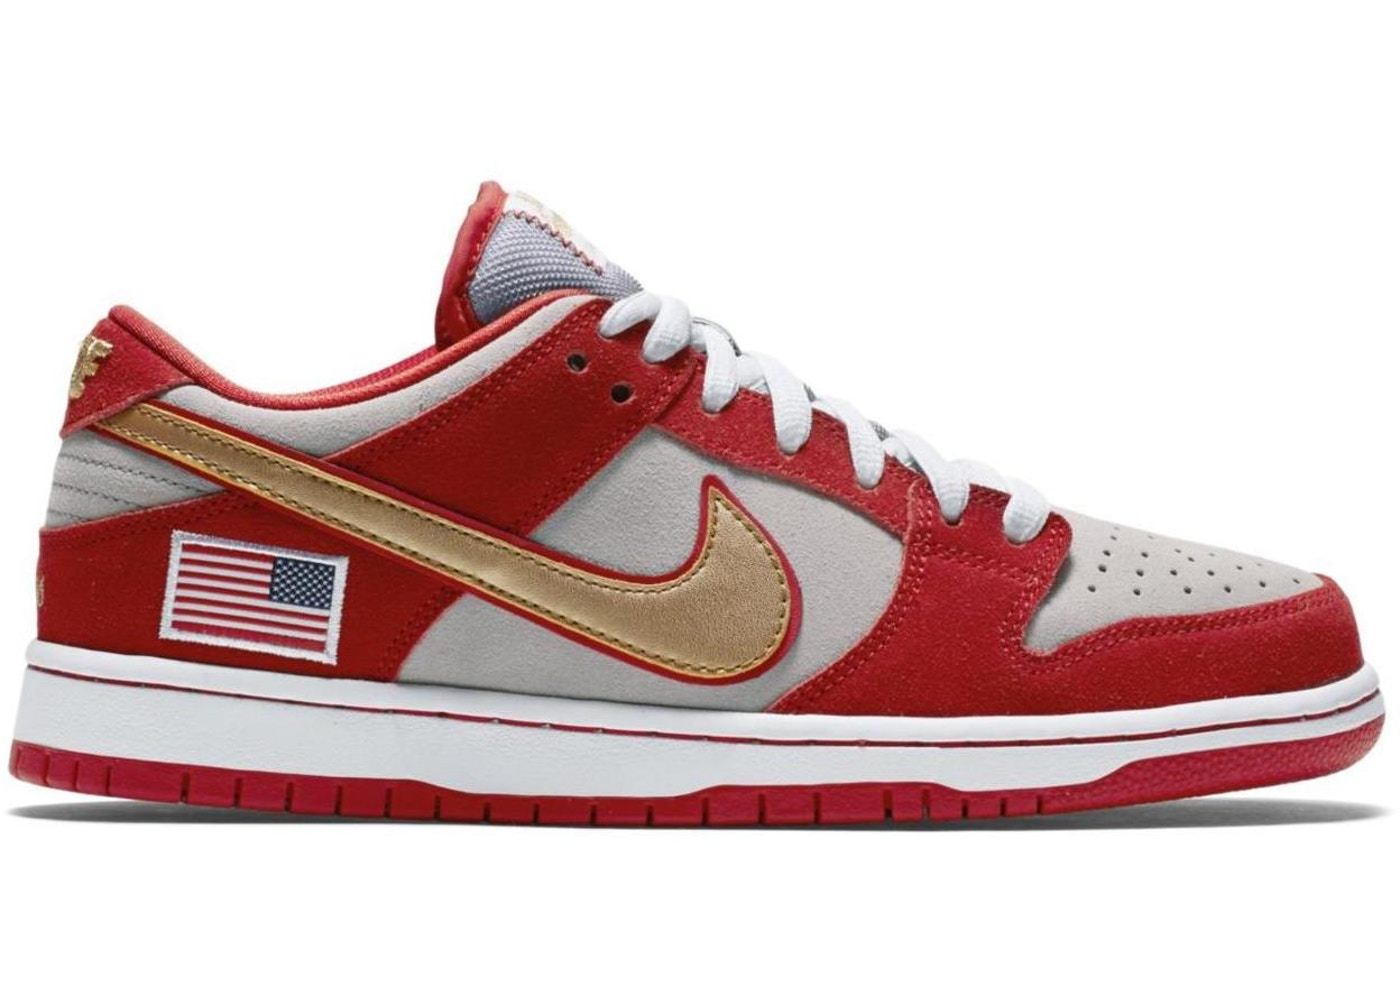 b805225f Nike Dunk SB Low Nasty Boys - 304292-610